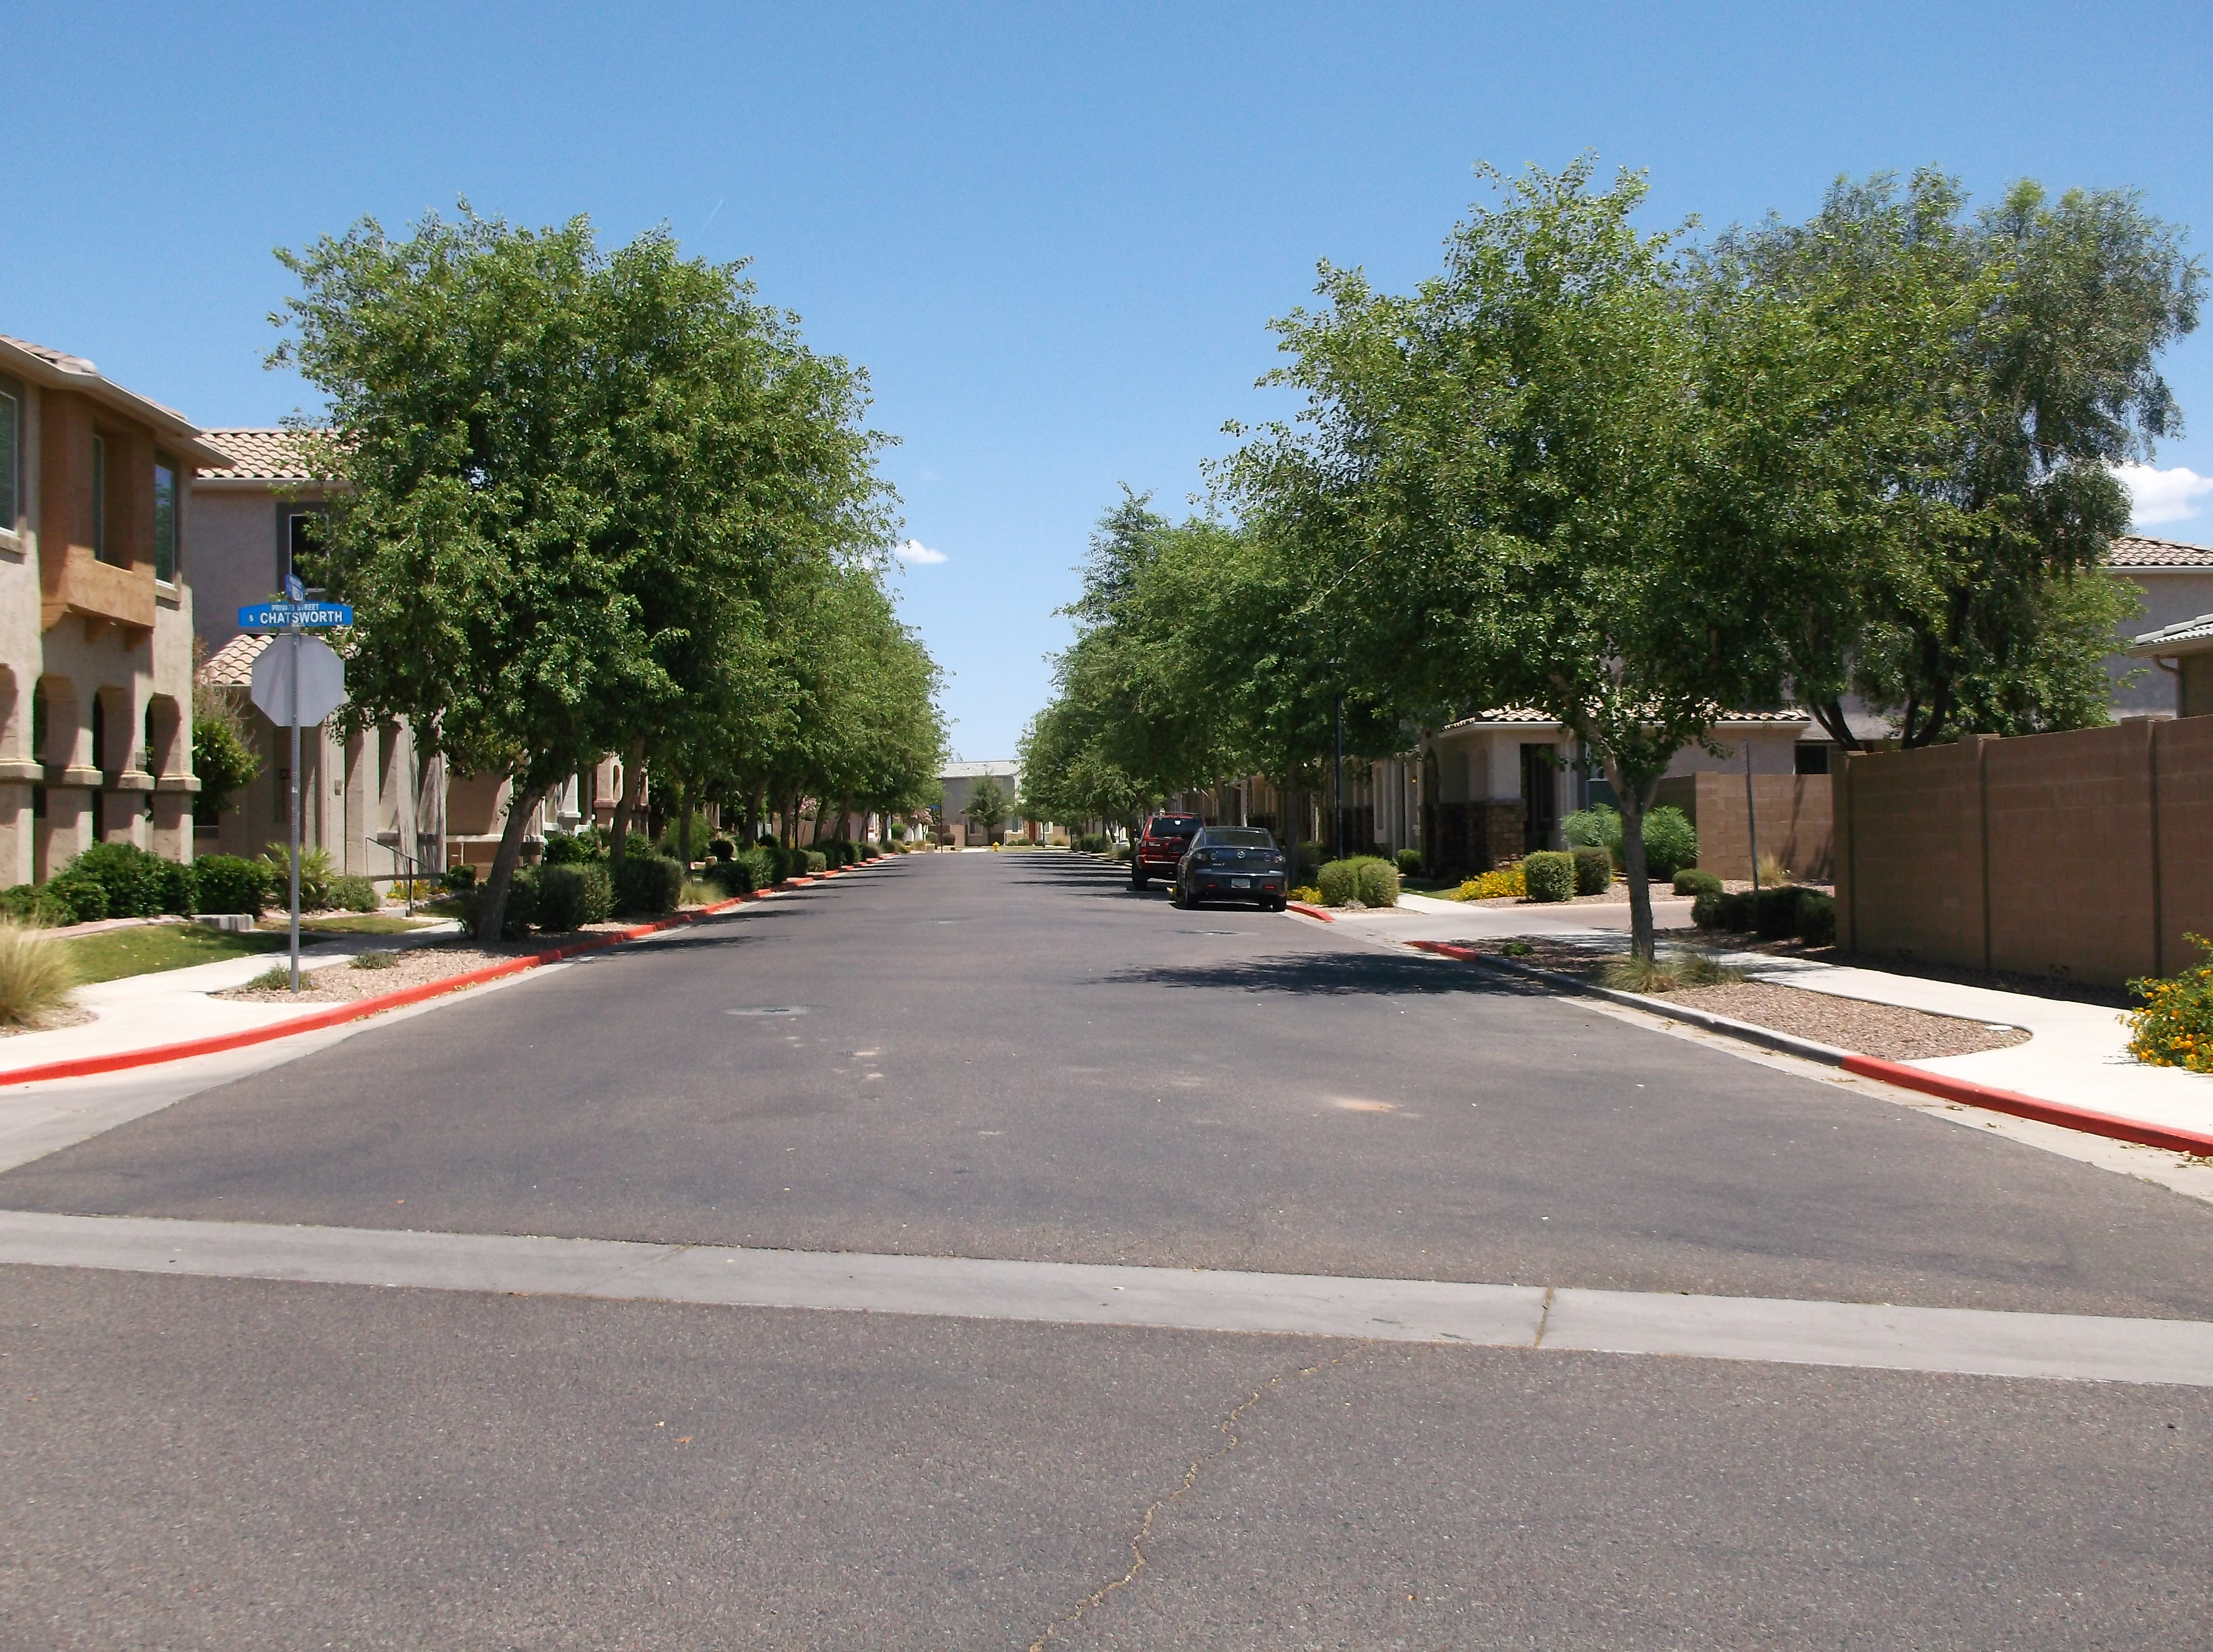 Tree lined streets in Crismon Creek in mesa